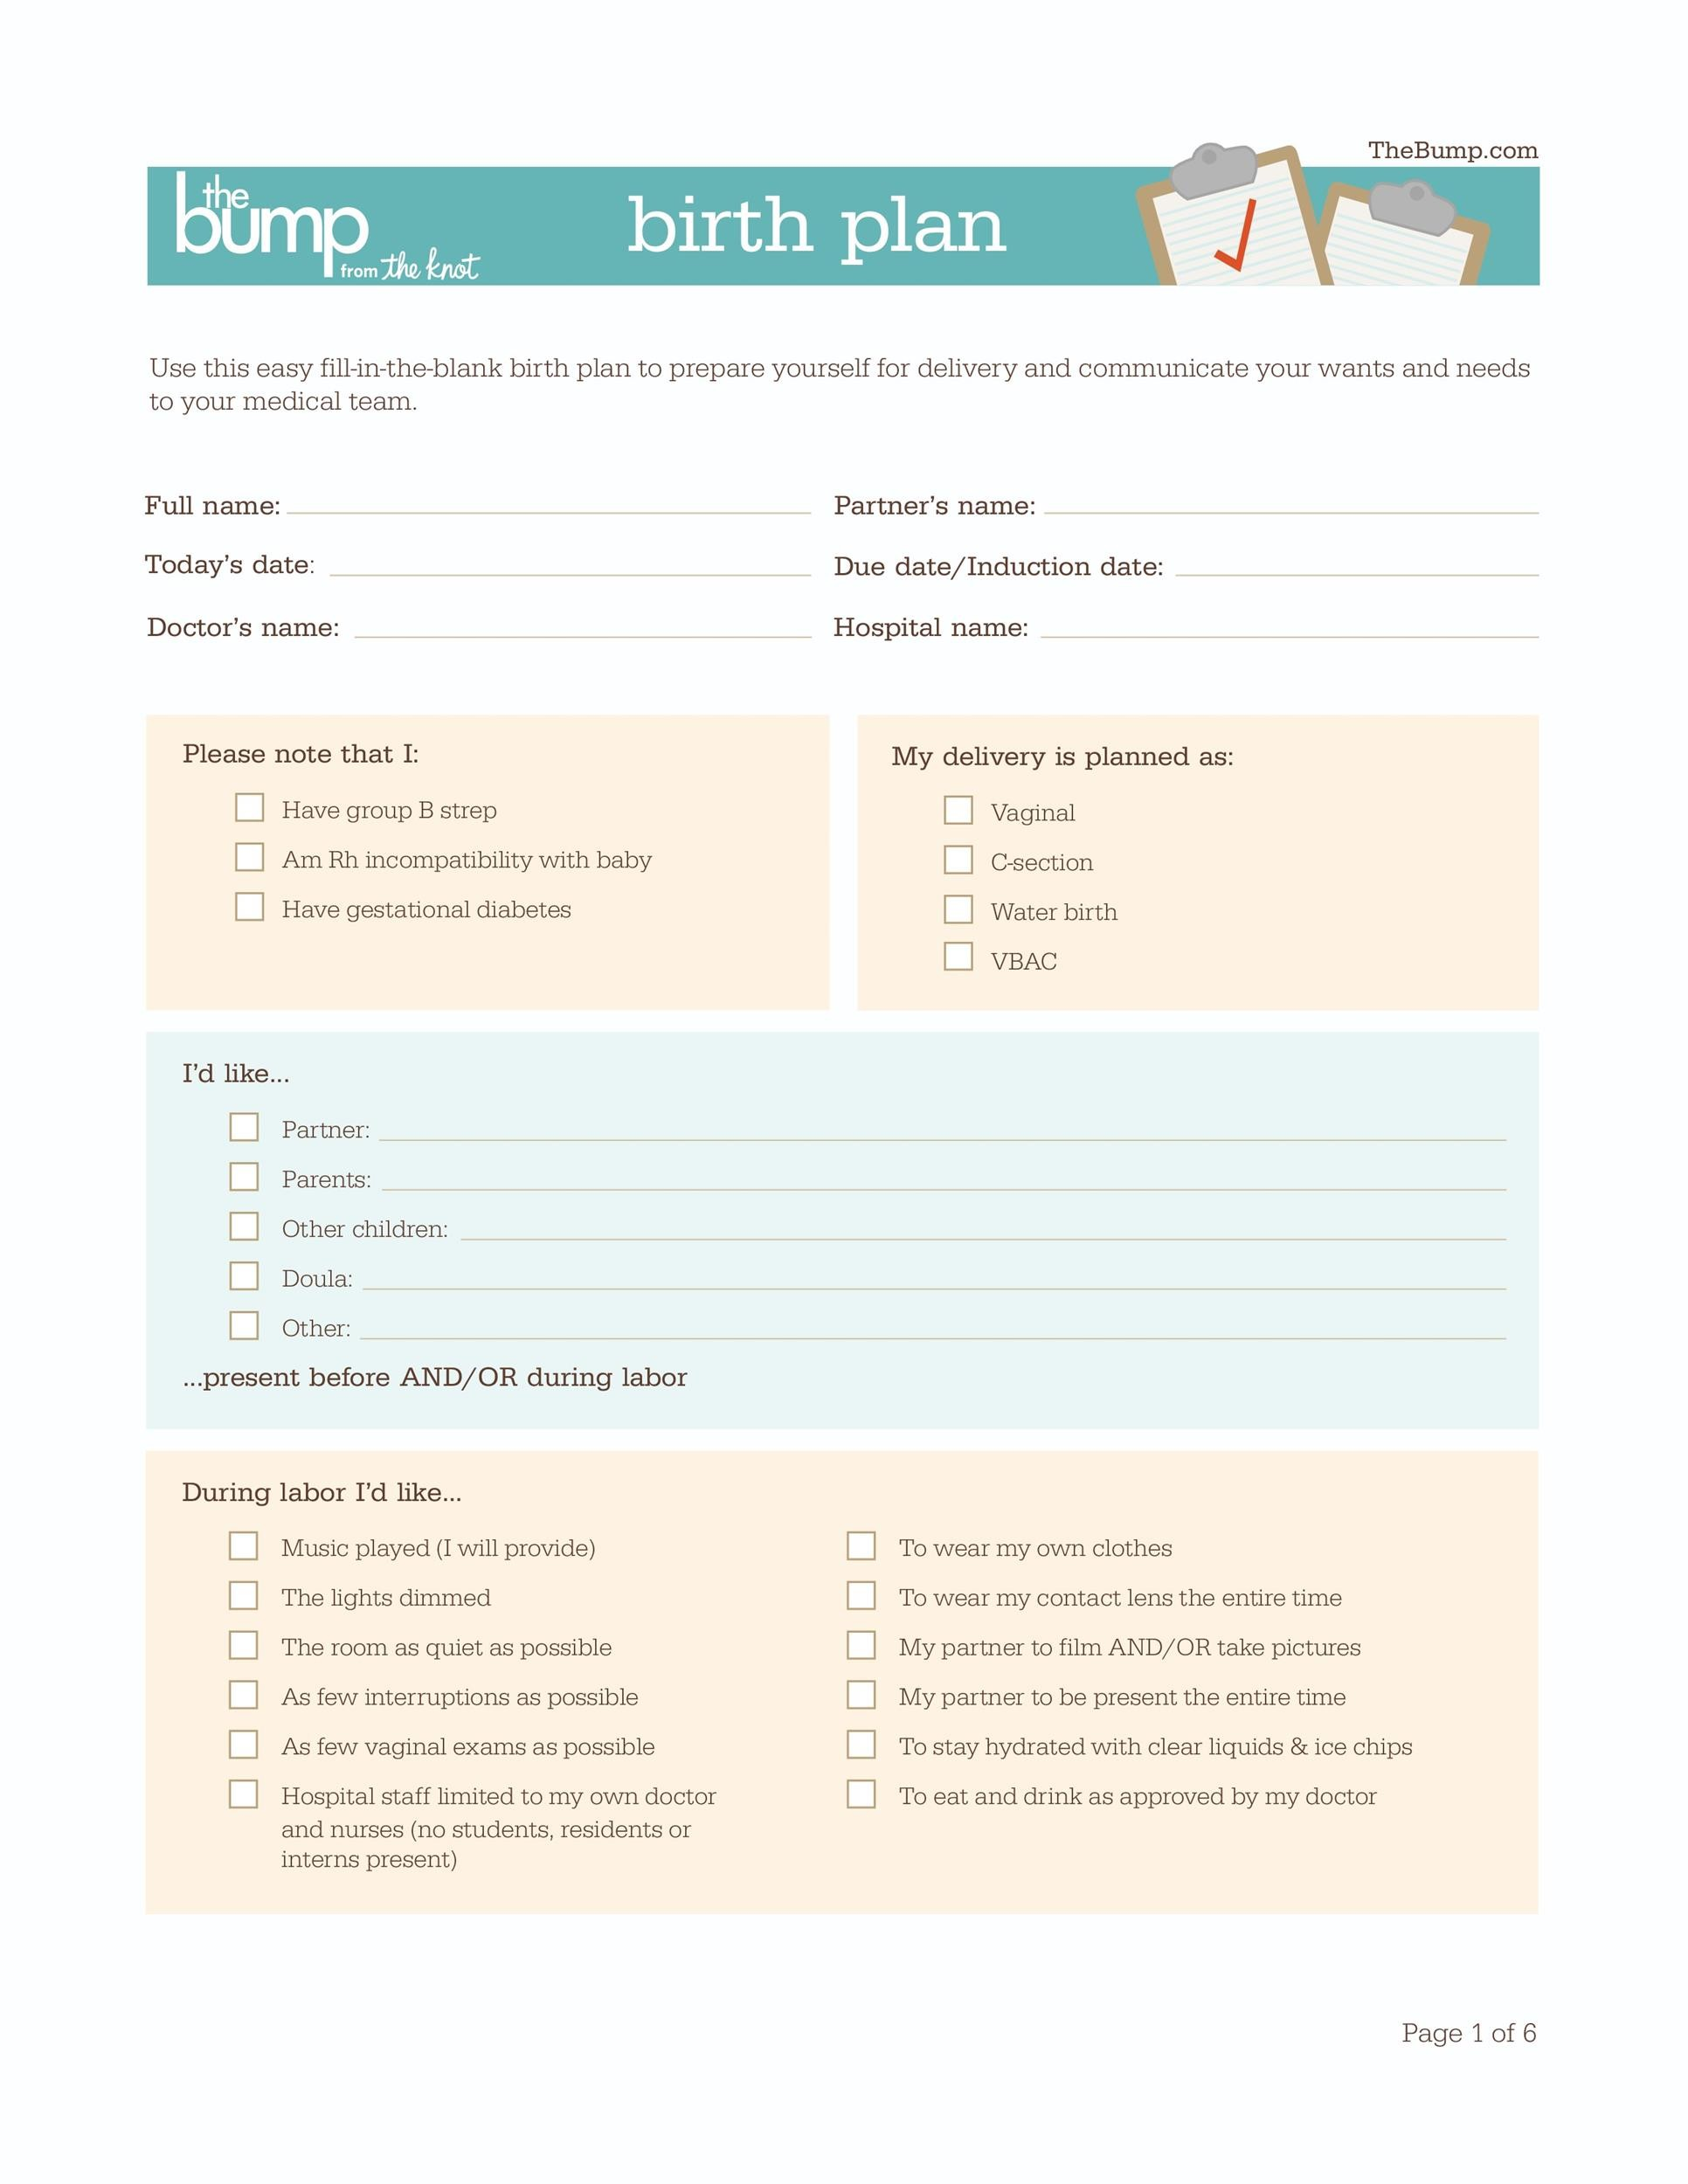 Editable birth plan for Cesarean birth plan template